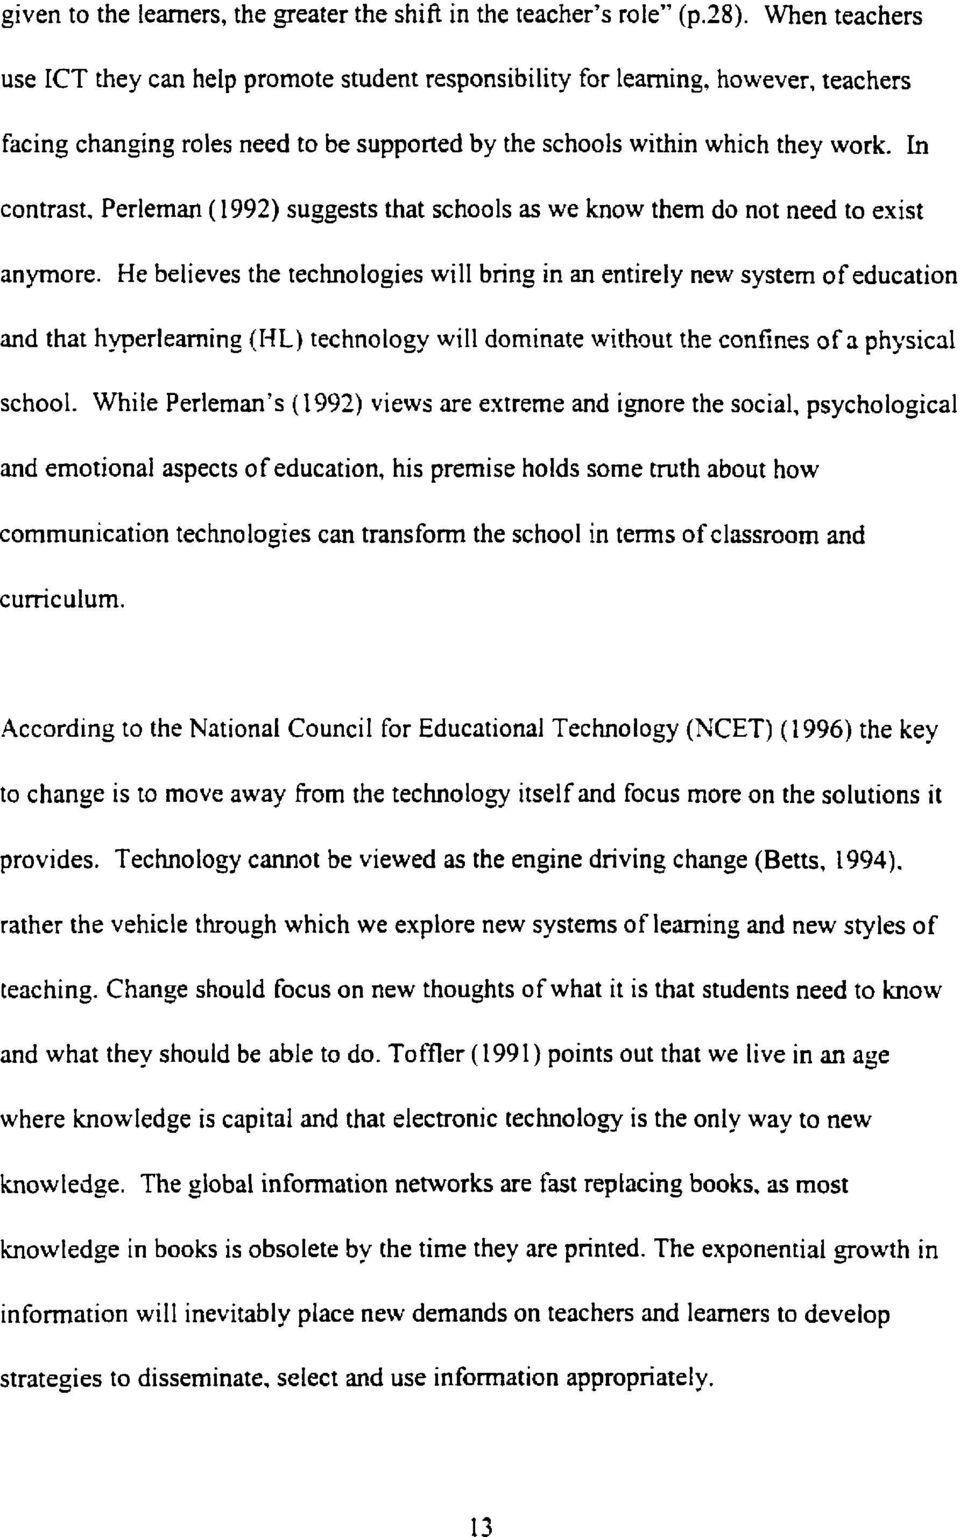 Perieman (1992) suggests that schools as we know them do not need to exist anymore.